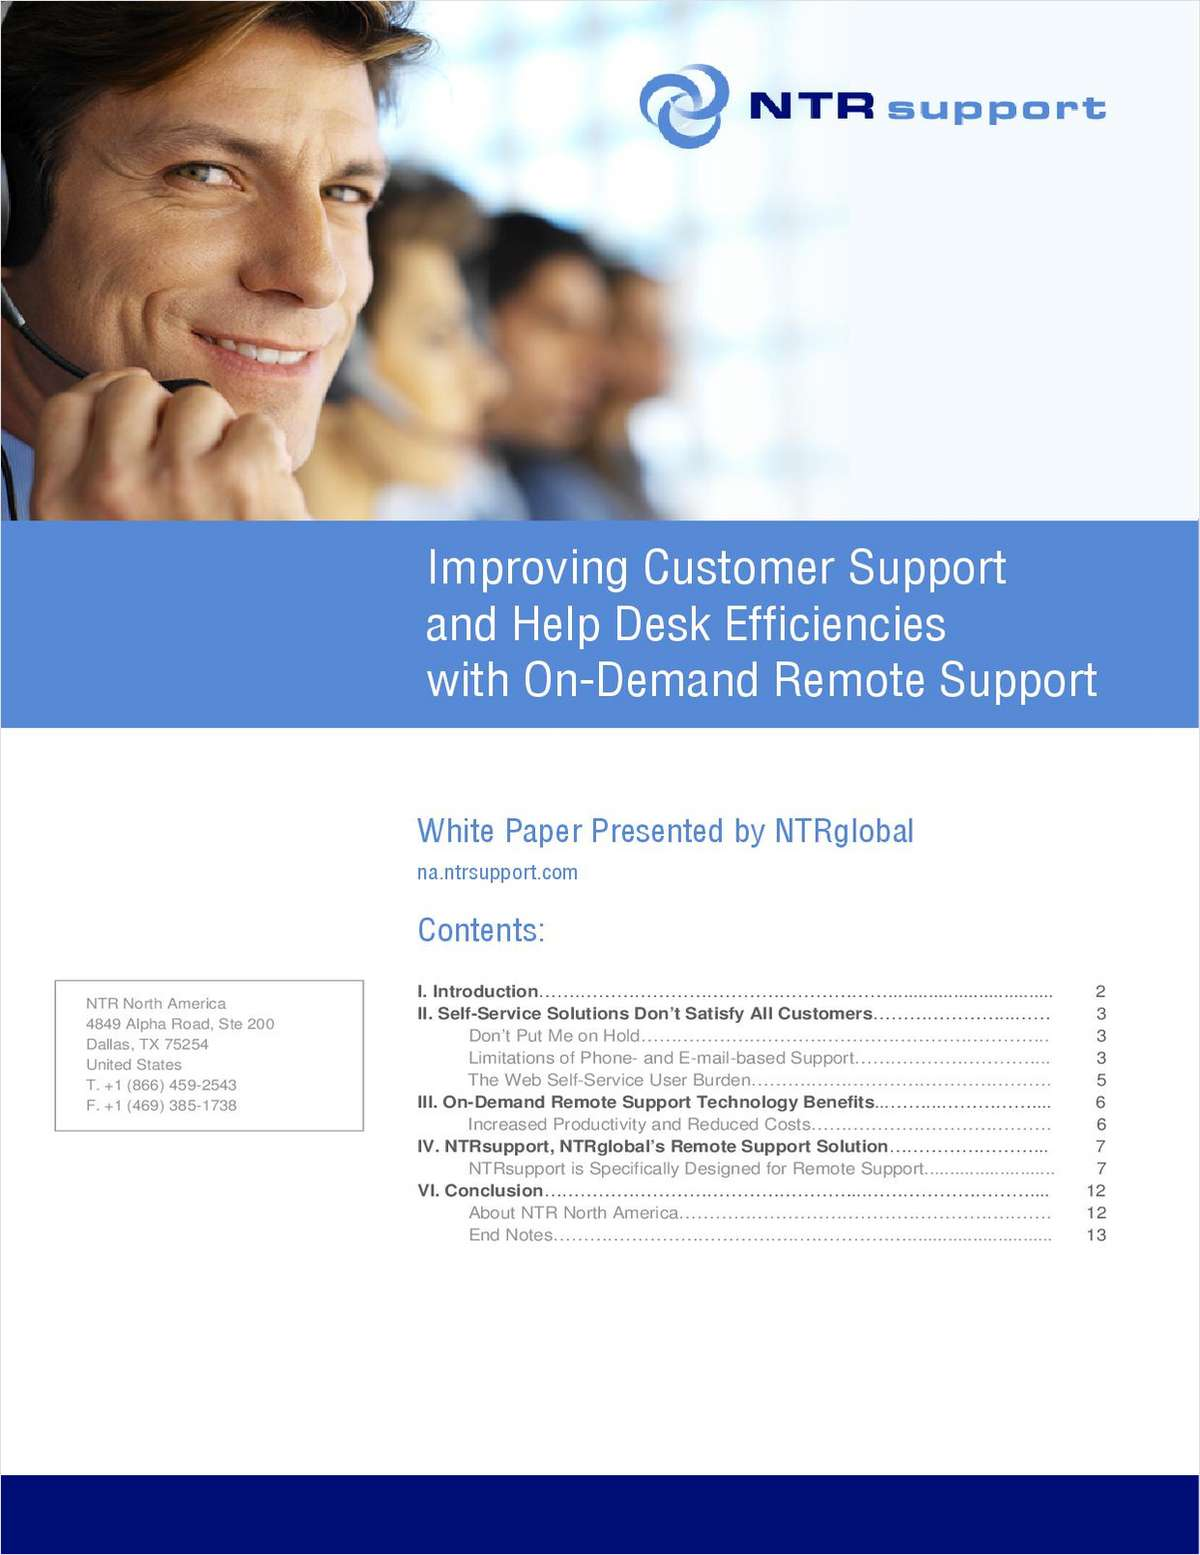 Improving Customer Support and Help Desk Efficiencies